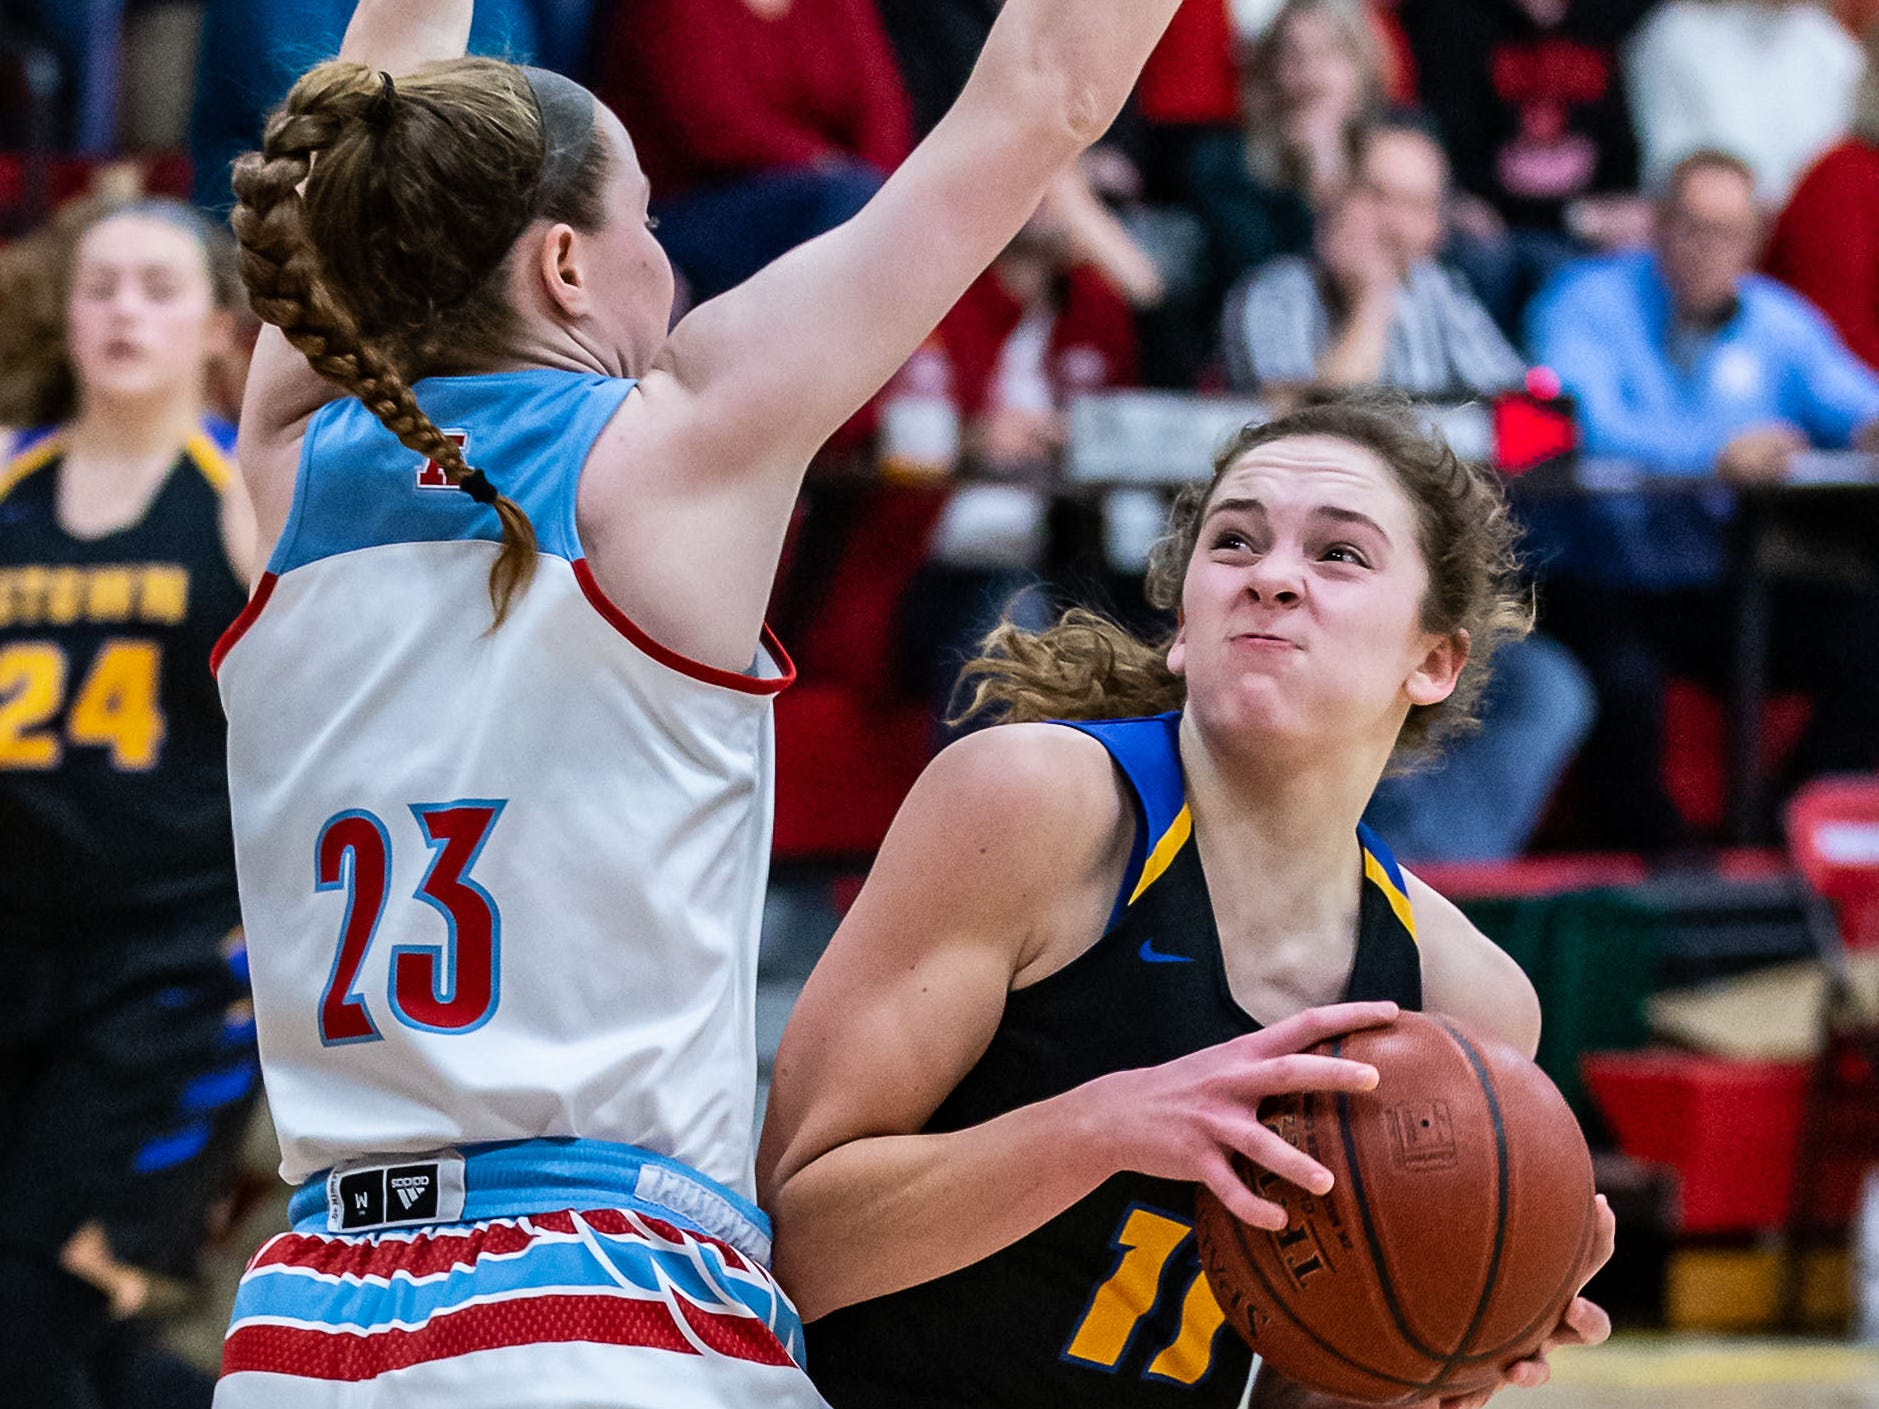 Germantown's Natalie McNeal (11) looks for a way around Arrowhead defender Bailey Deininger (23) during the game at Arrowhead on Saturday, Jan. 26, 2019.